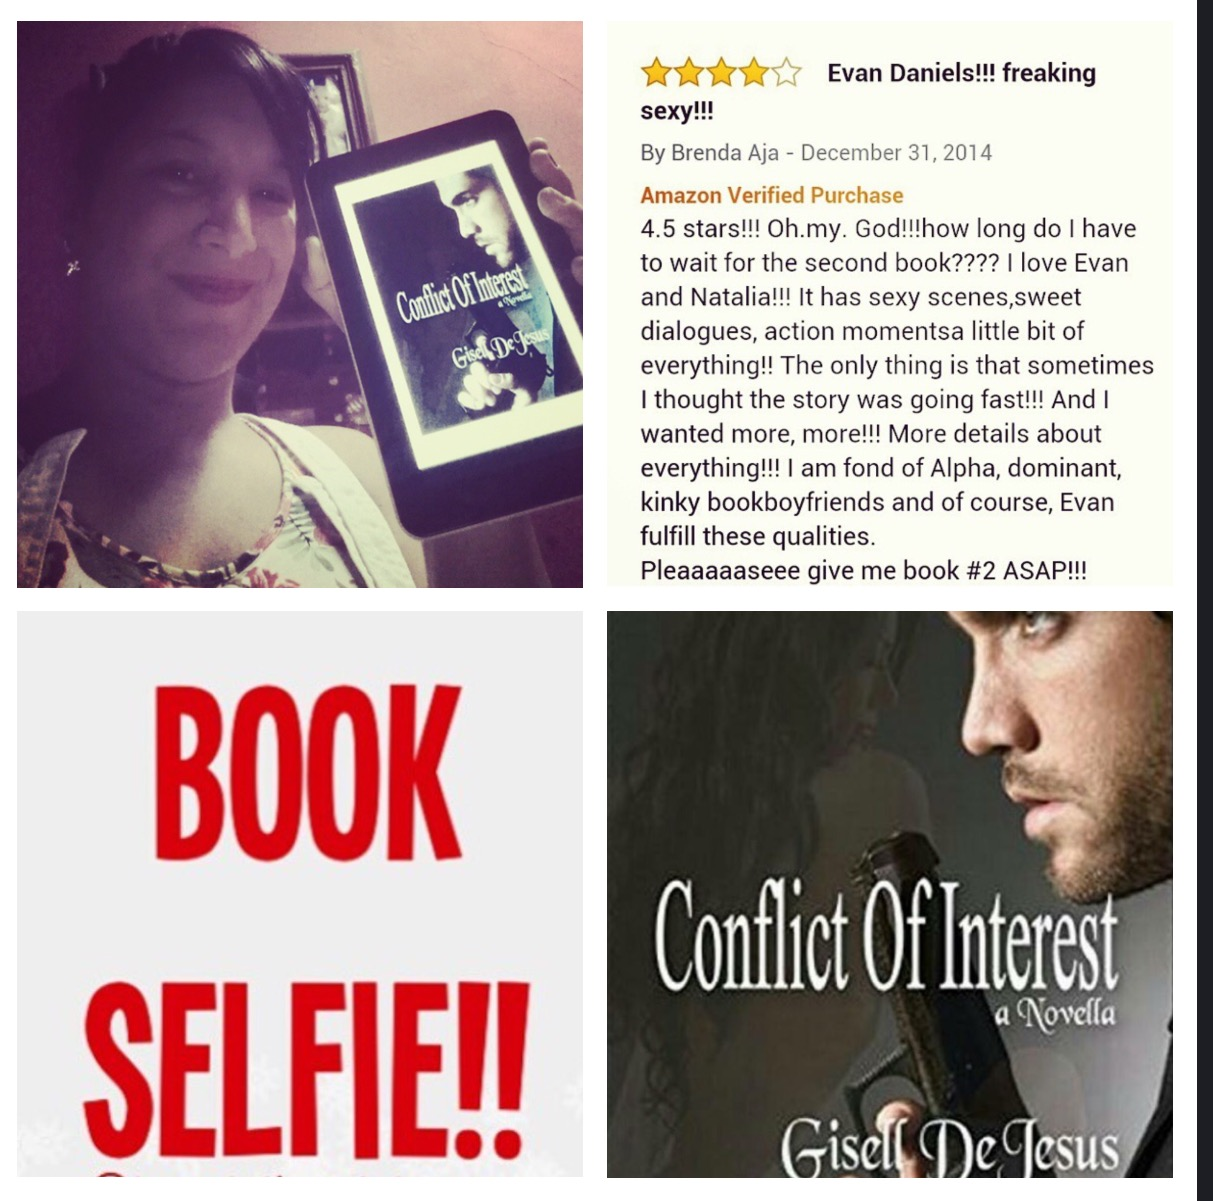 http://www.amazon.com/Conflict-Interest-Gisell-DeJesus-ebook/dp/B00PEWC7WS/ref=sr_1_1?ie=UTF8&qid=1424270701&sr=8-1&keywords=gisell+dejesus